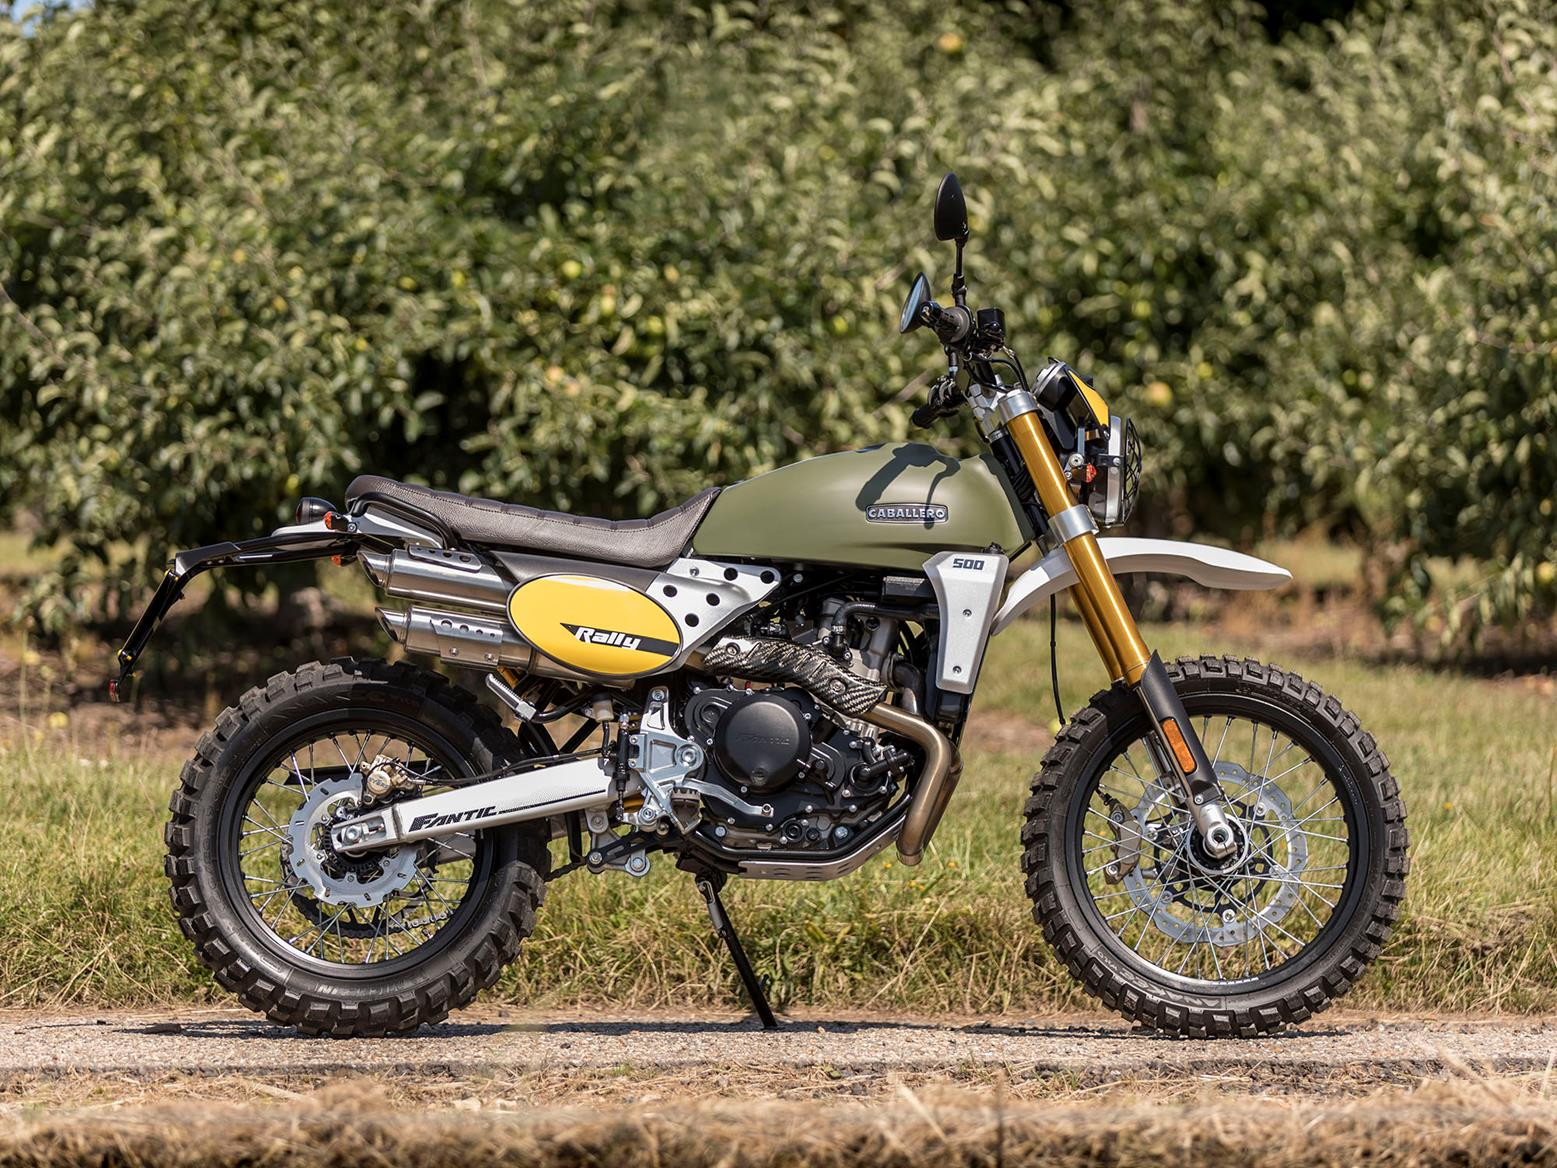 FANTIC CABALLERO 500 RALLY (2019-on) Review